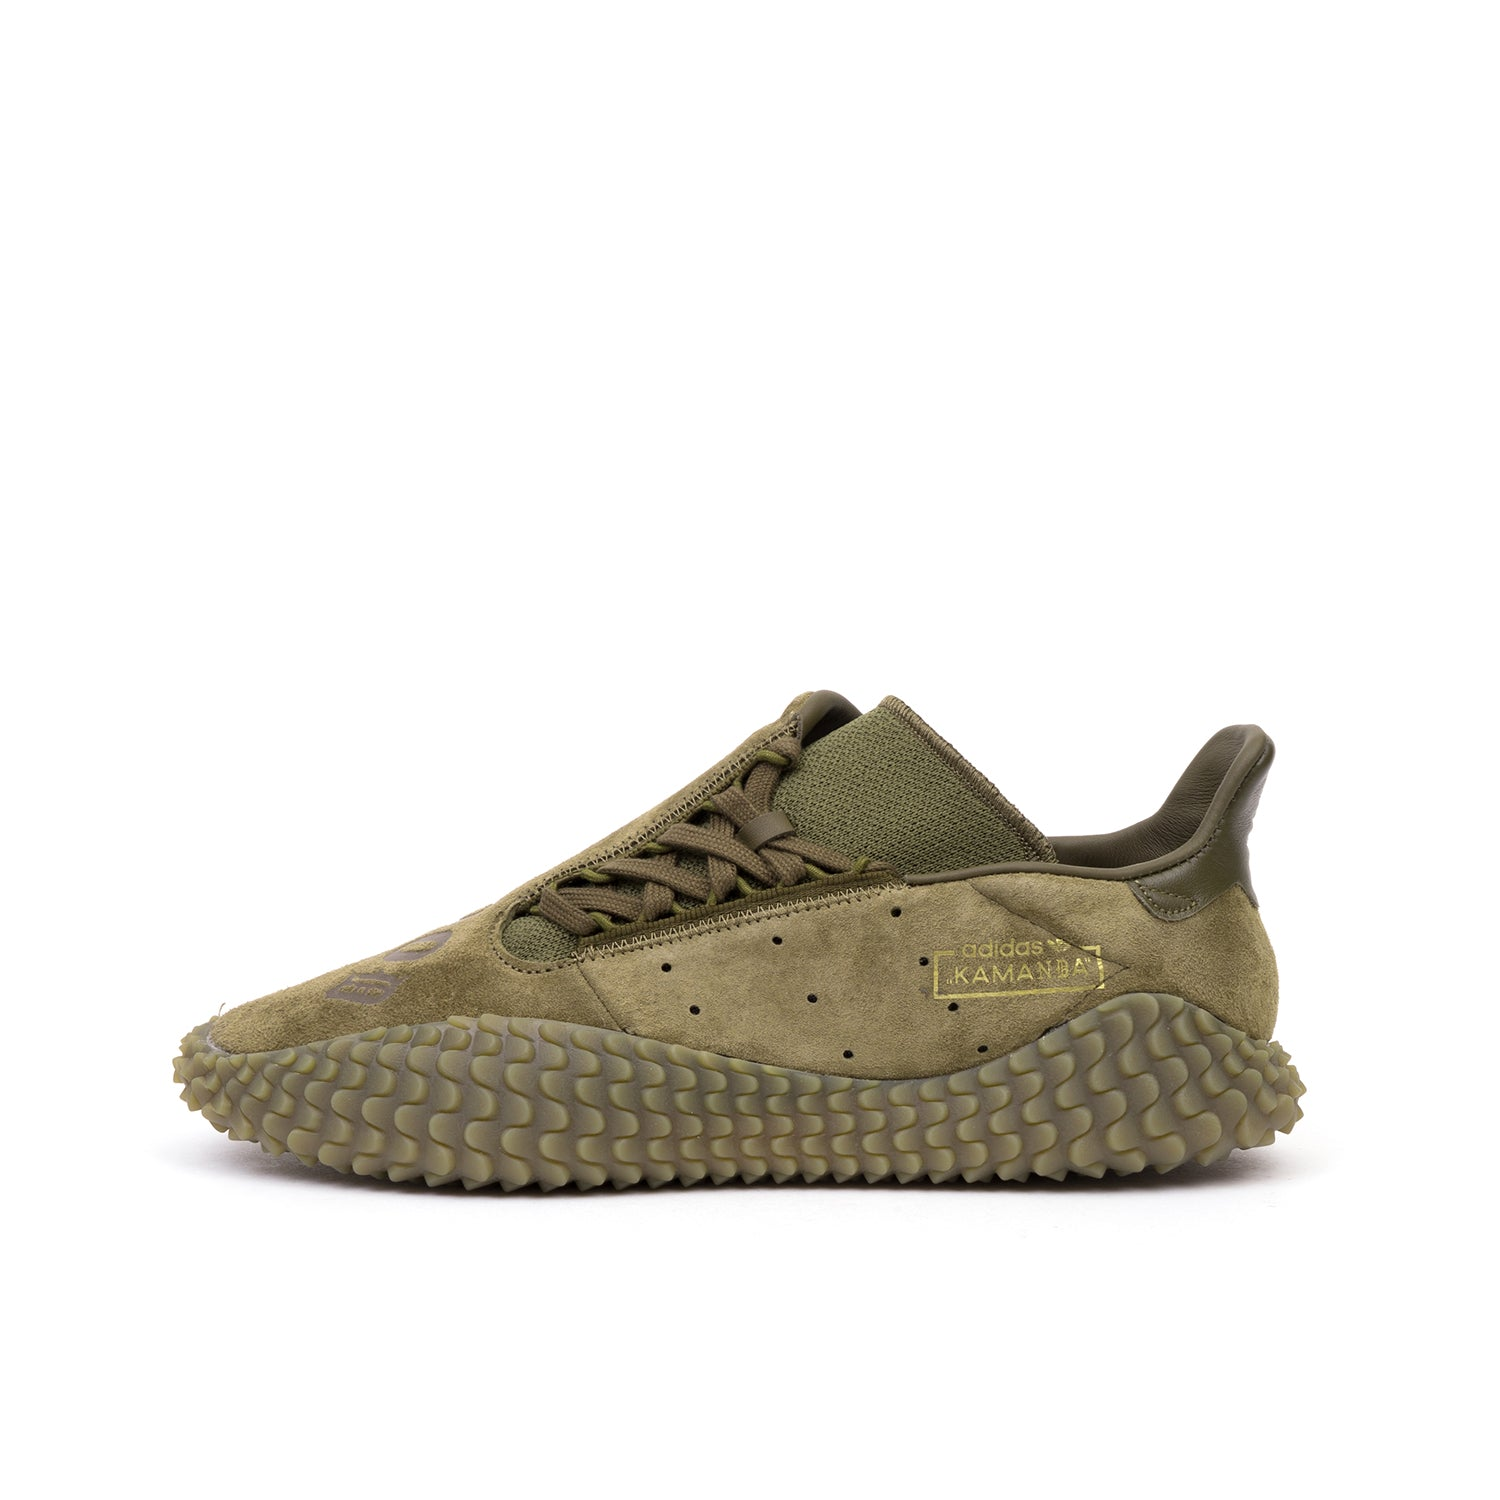 promo code 155f6 0d92b adidas Originals x NEIGHBORHOOD Kamanda 01 NBHD Trace Olive